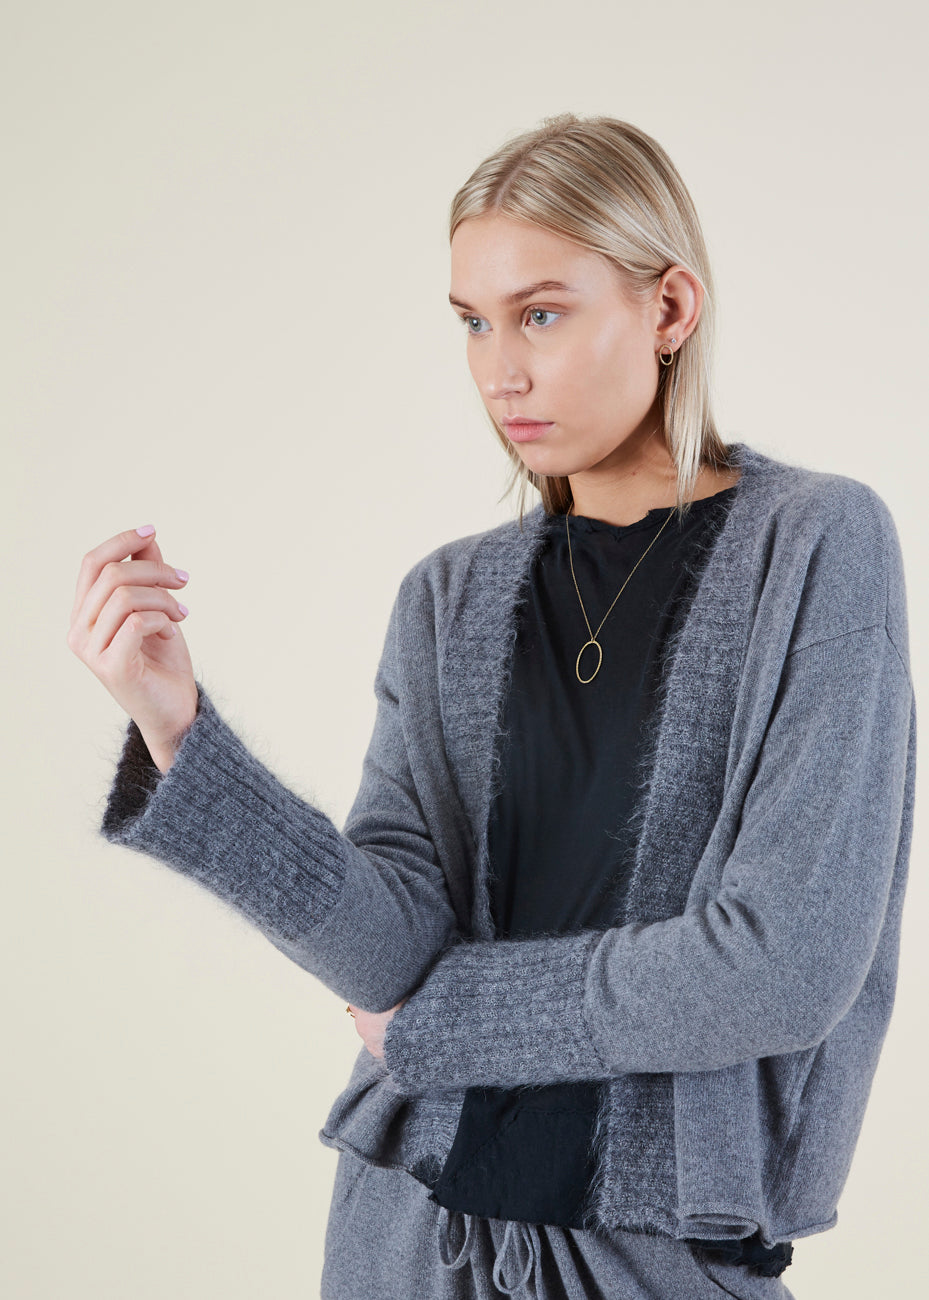 MJ. Watson Mixed Yarn Cashmere Cardigan